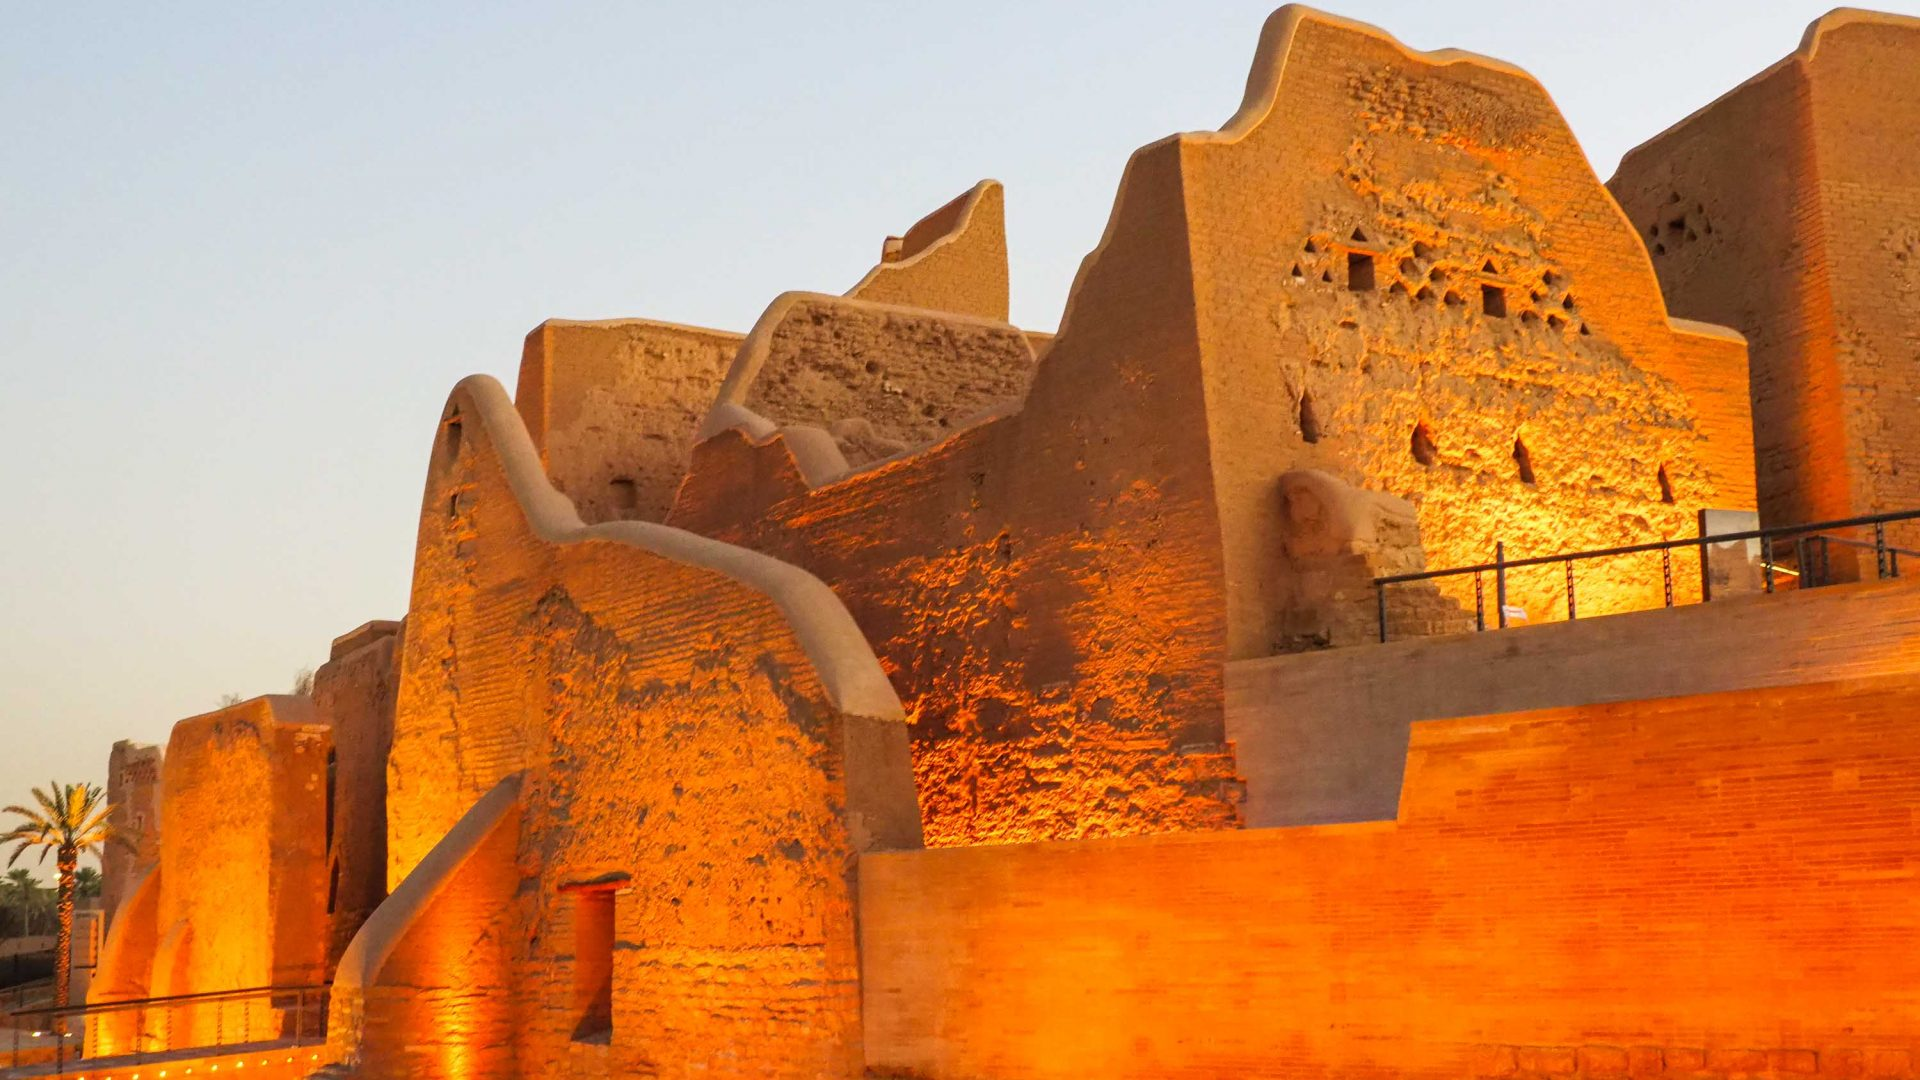 UNESCO-listed At-Turaif is a 15-minute drive from central Riyadh.